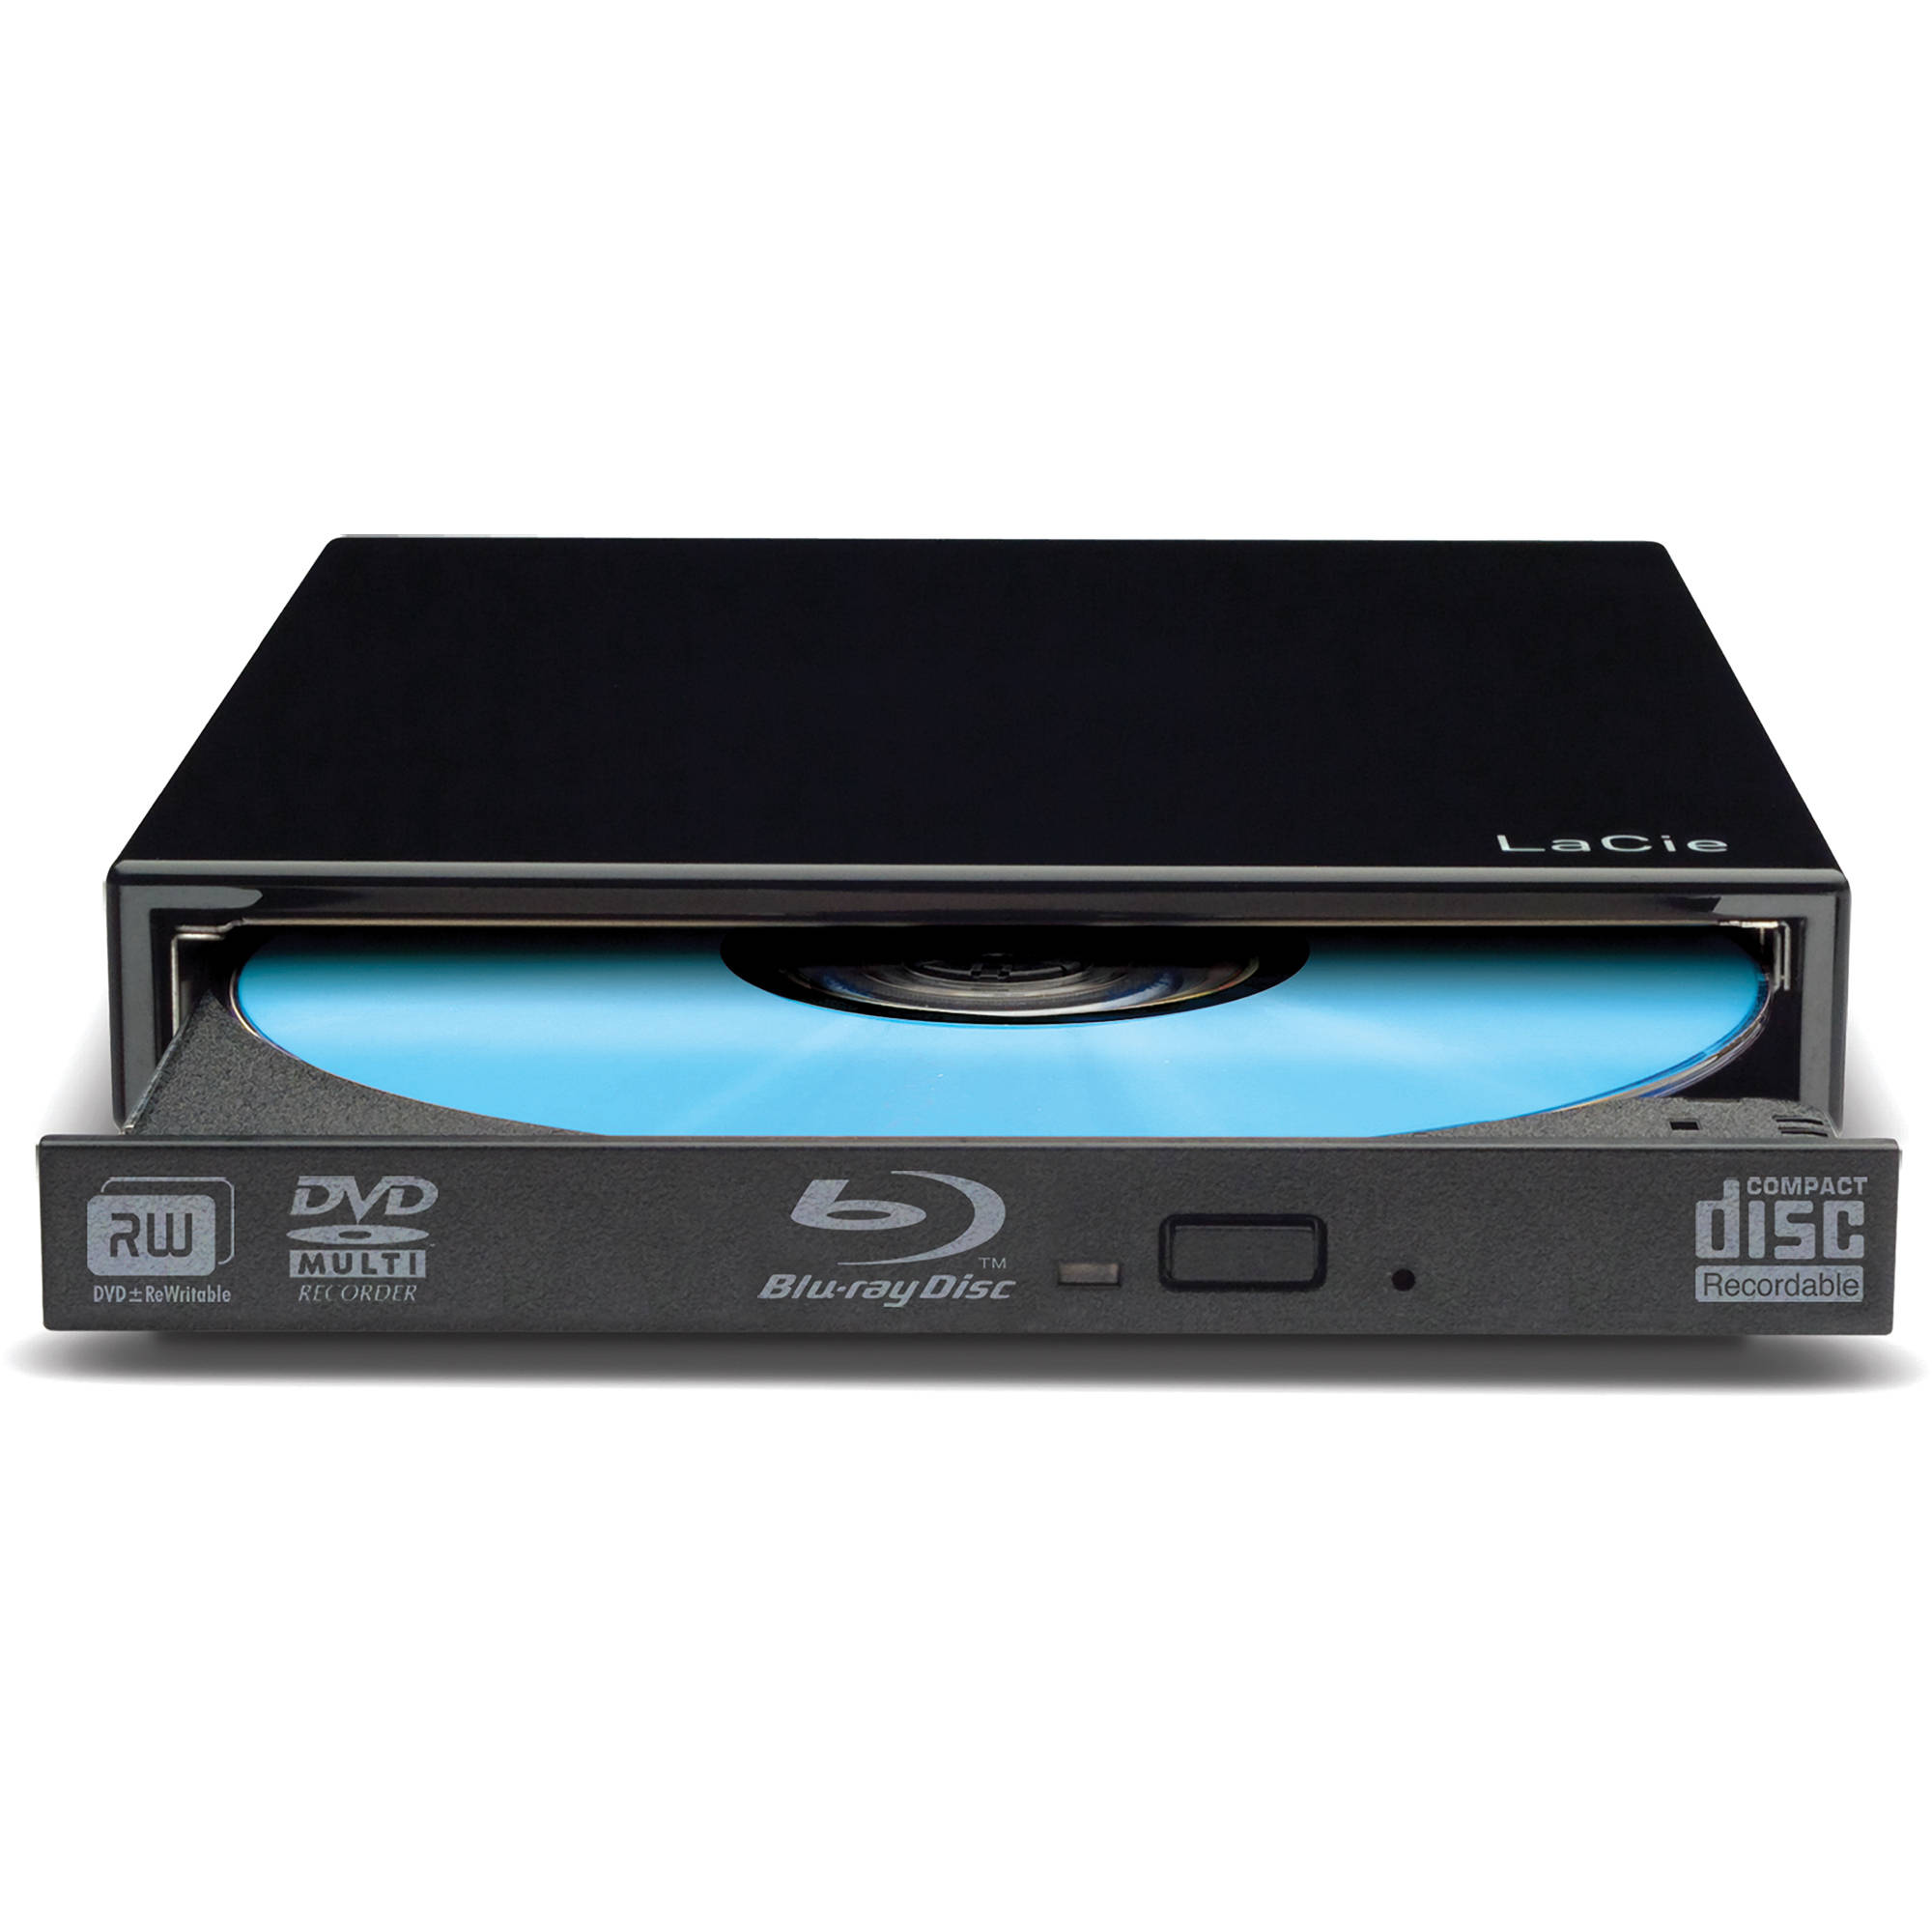 LaCie Slim Blu-ray External 6x Blu-ray Drive 301978 B&H Photo